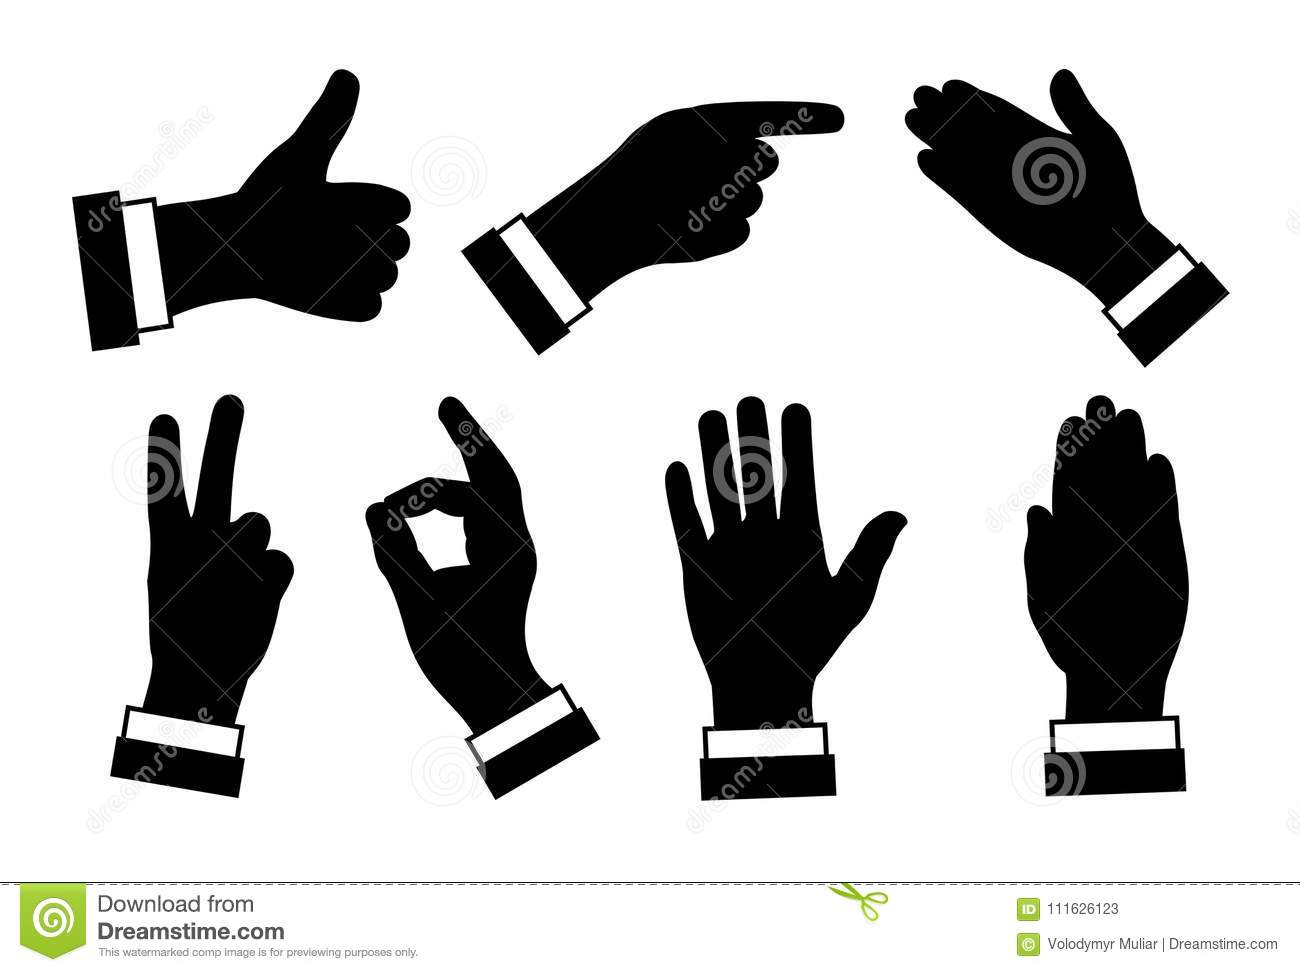 Silhouettes Of Hands Different Signs And Symbols Black Image O